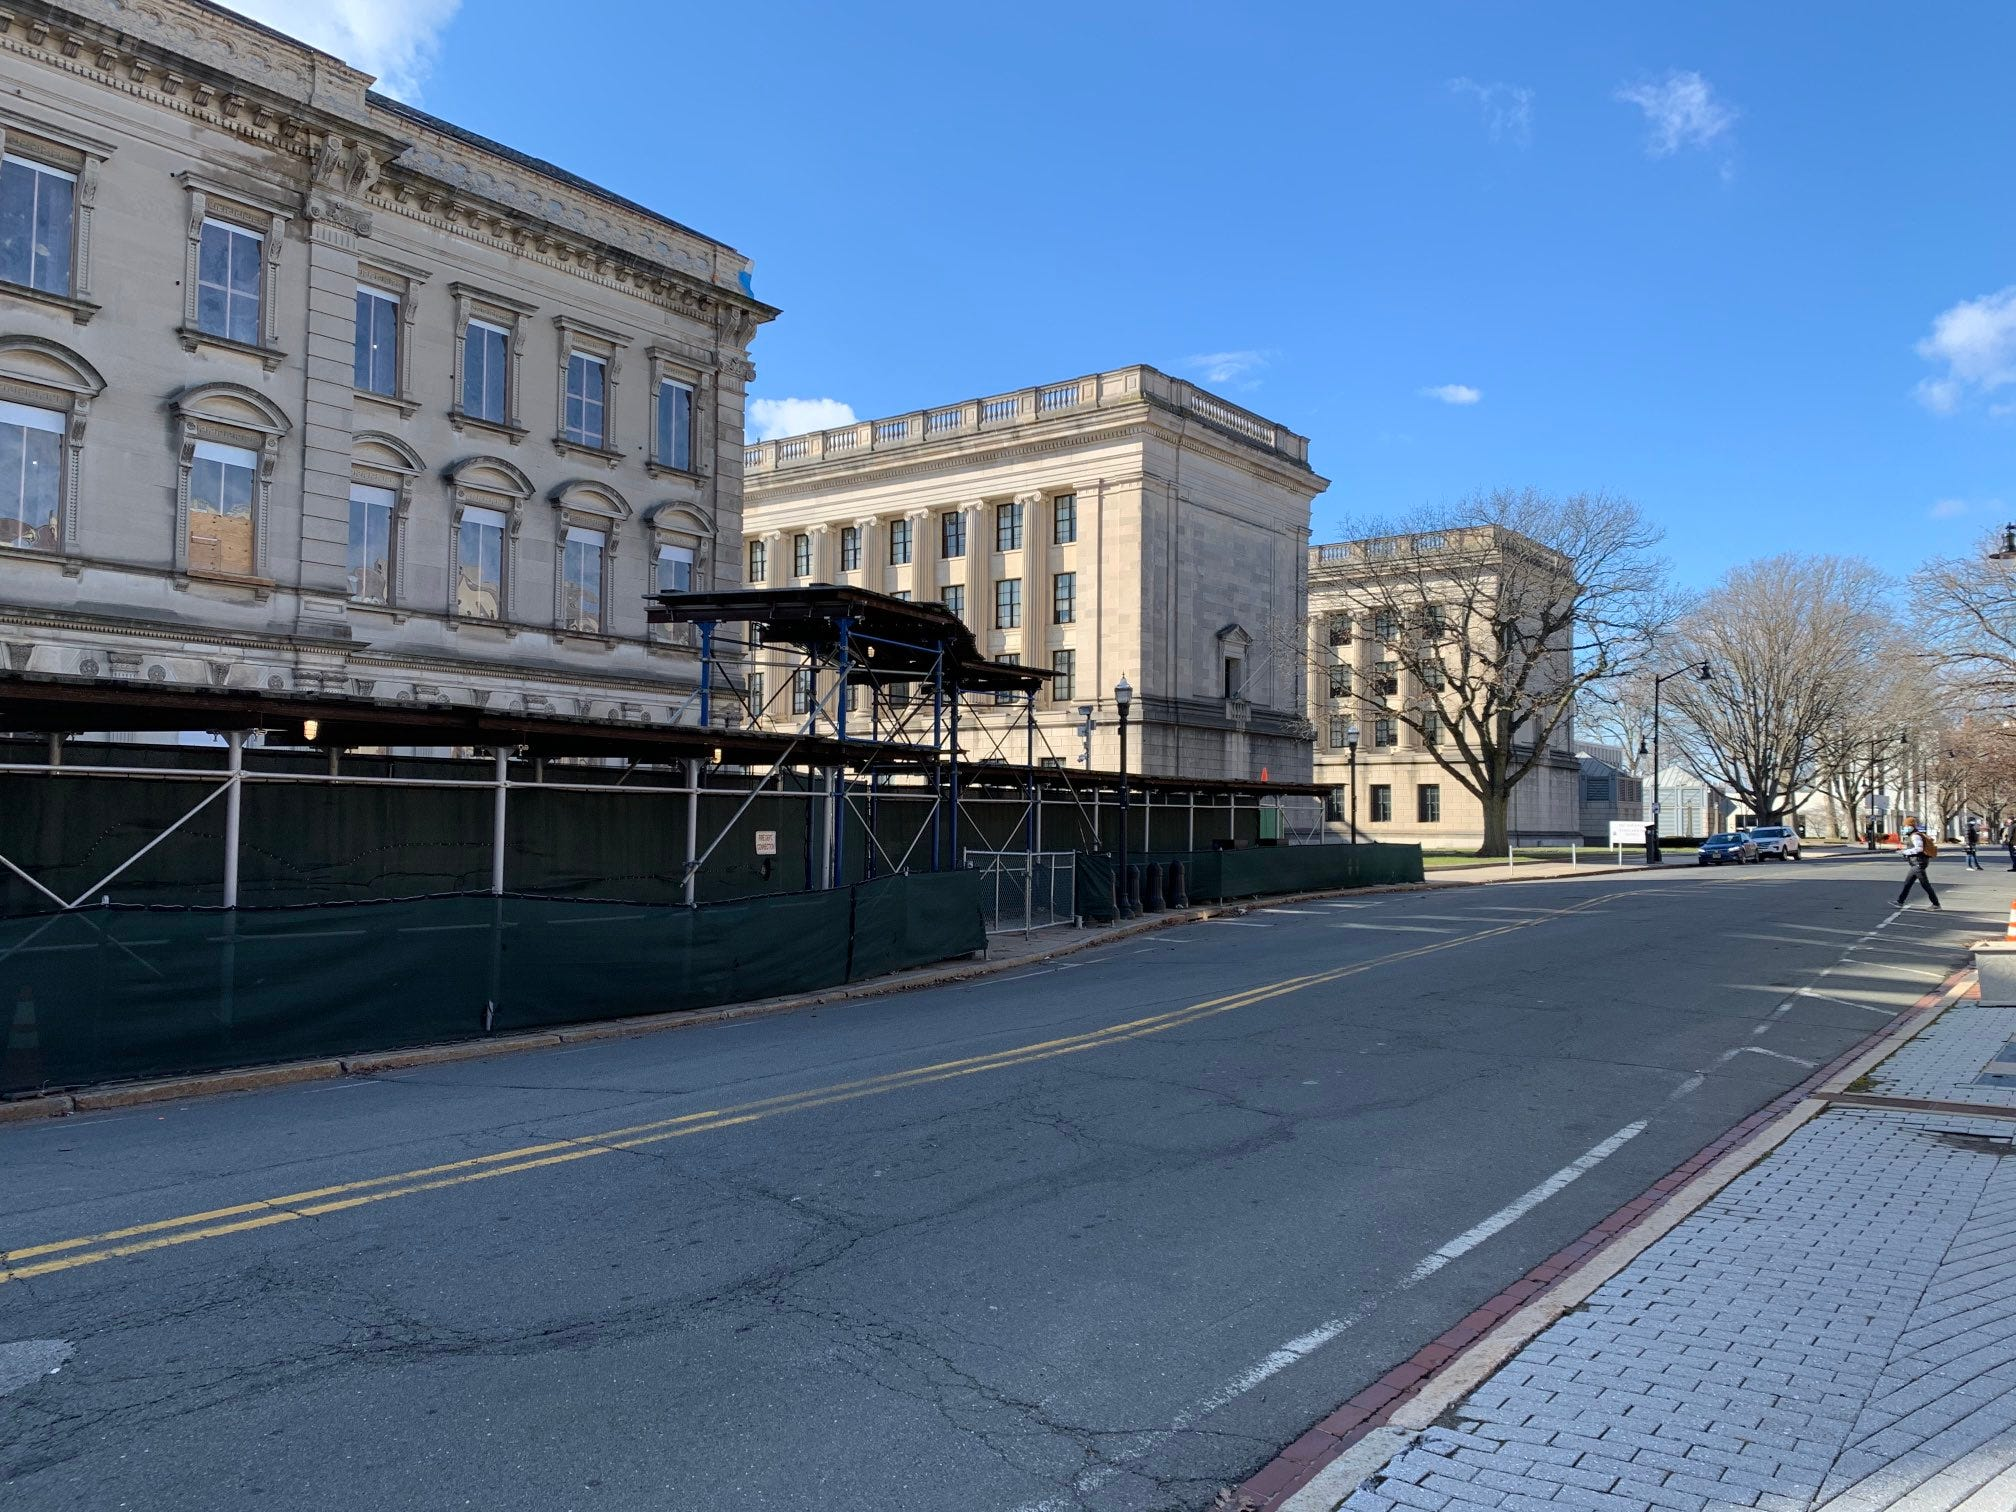 The Statehouse in Trenton was barricaded against planned protests on the morning of Sunday, Jan. 17, 2021, but the streets were empty.